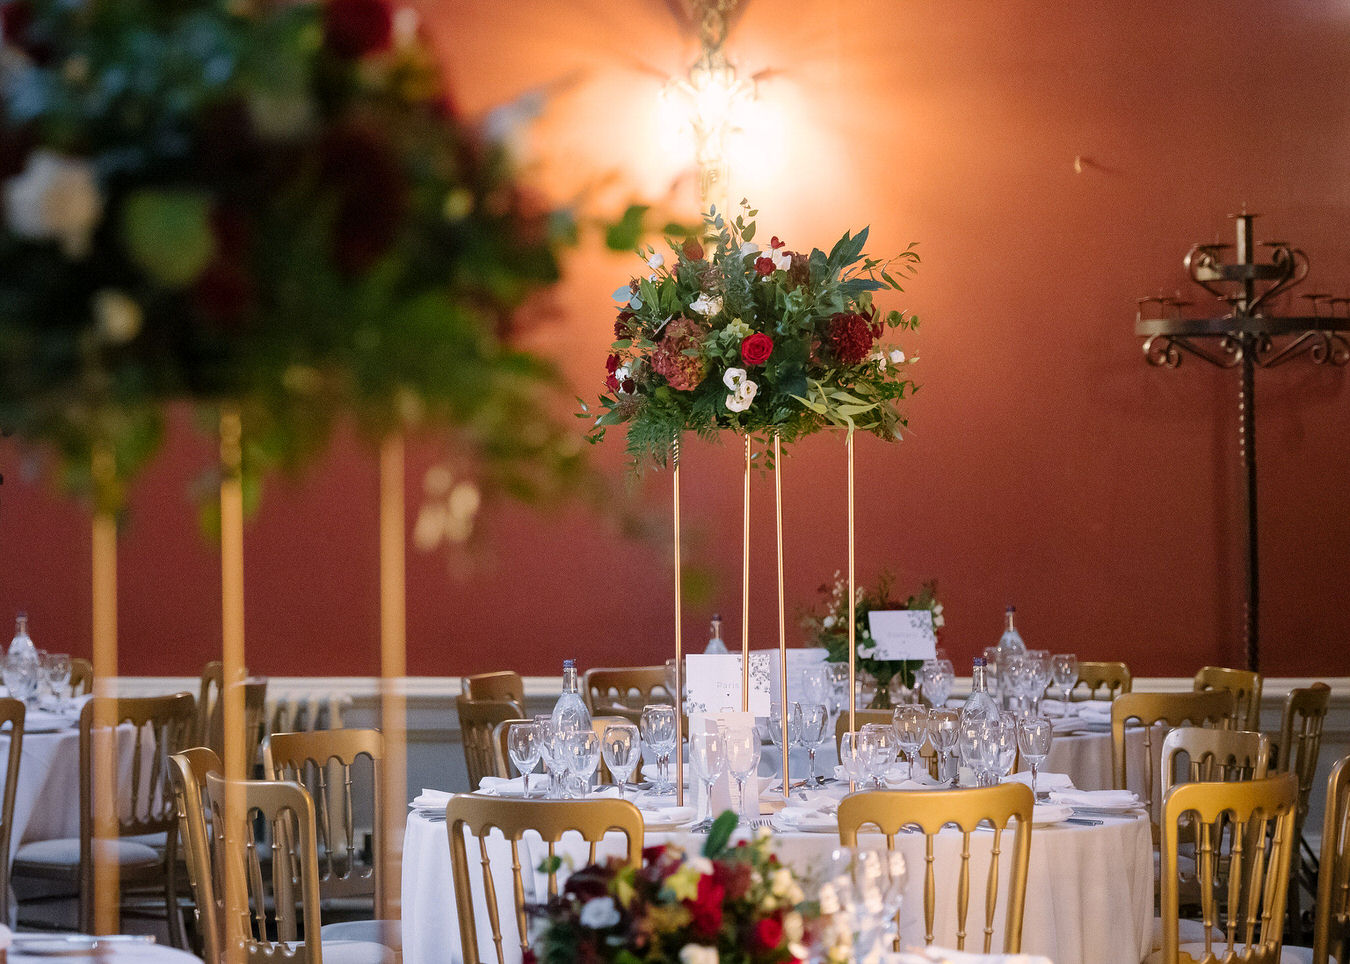 Asian wedding tall table centerpiece with dark red & white flowers at Hampton Court House reception